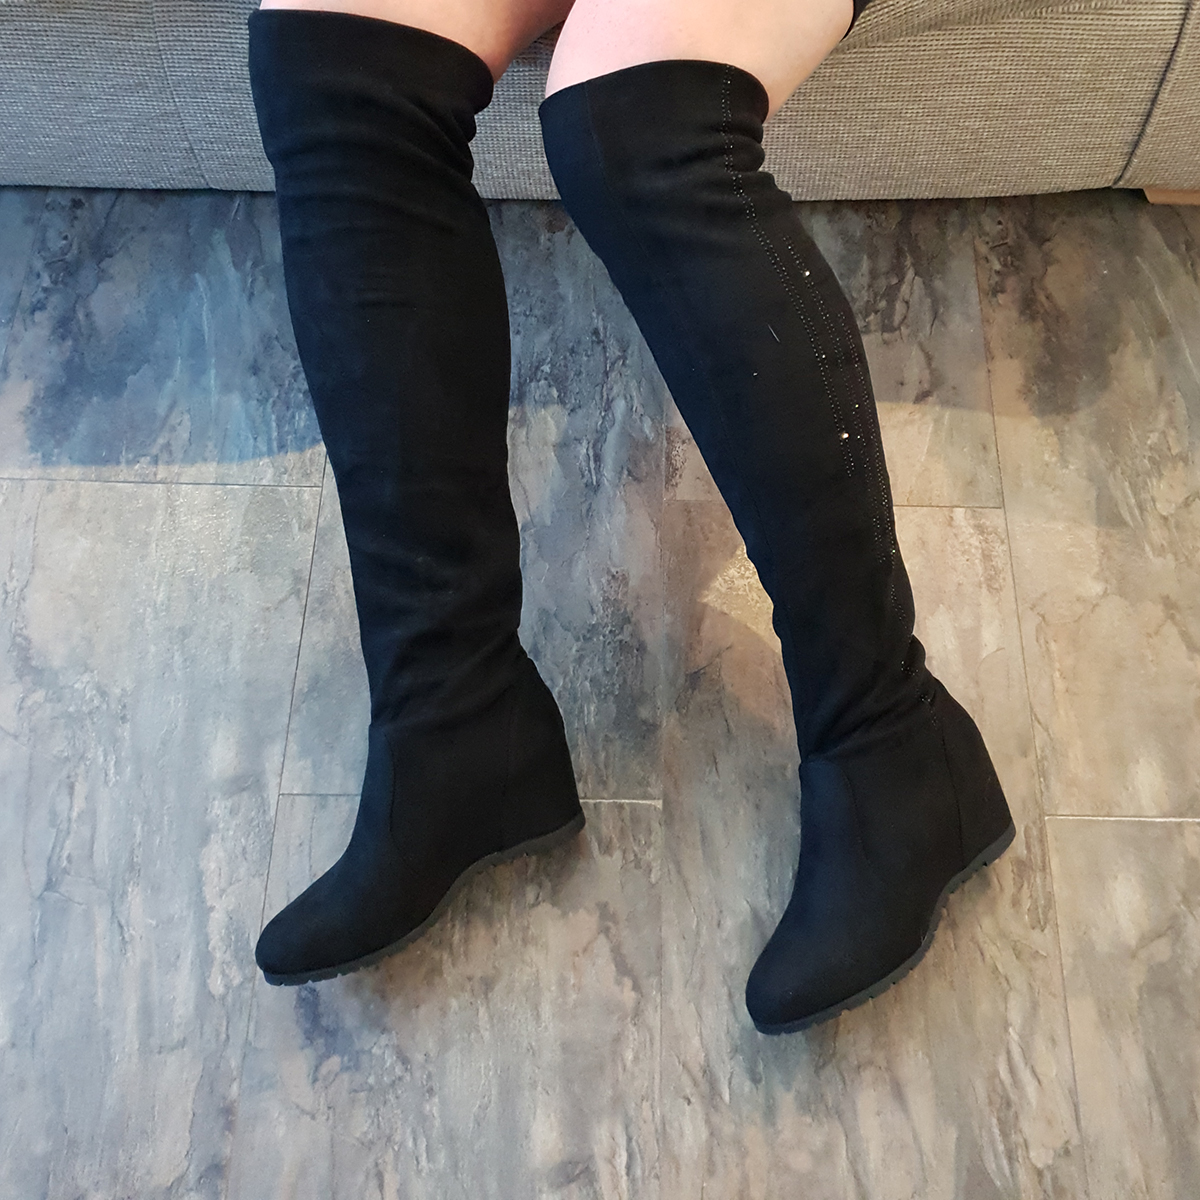 09ca3f2859e Details about WEDGE heel OVER THE KNEE Boots Womens Black Sequin Stretch  Faux Suede Ladies UK